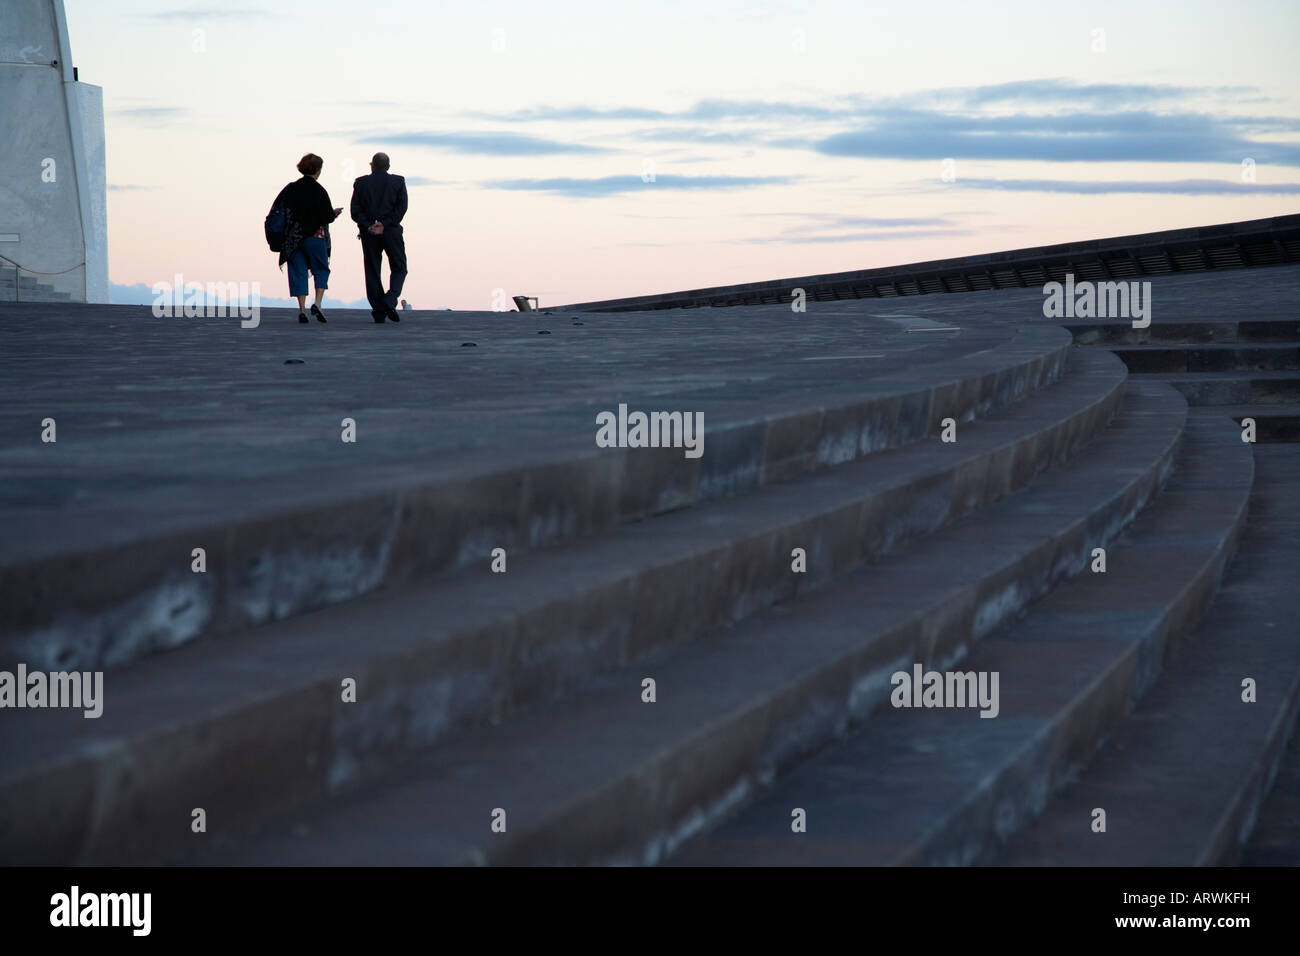 single lone female with security guard walking away from steps on with man in the distance in santa cruz tenerife - Stock Image